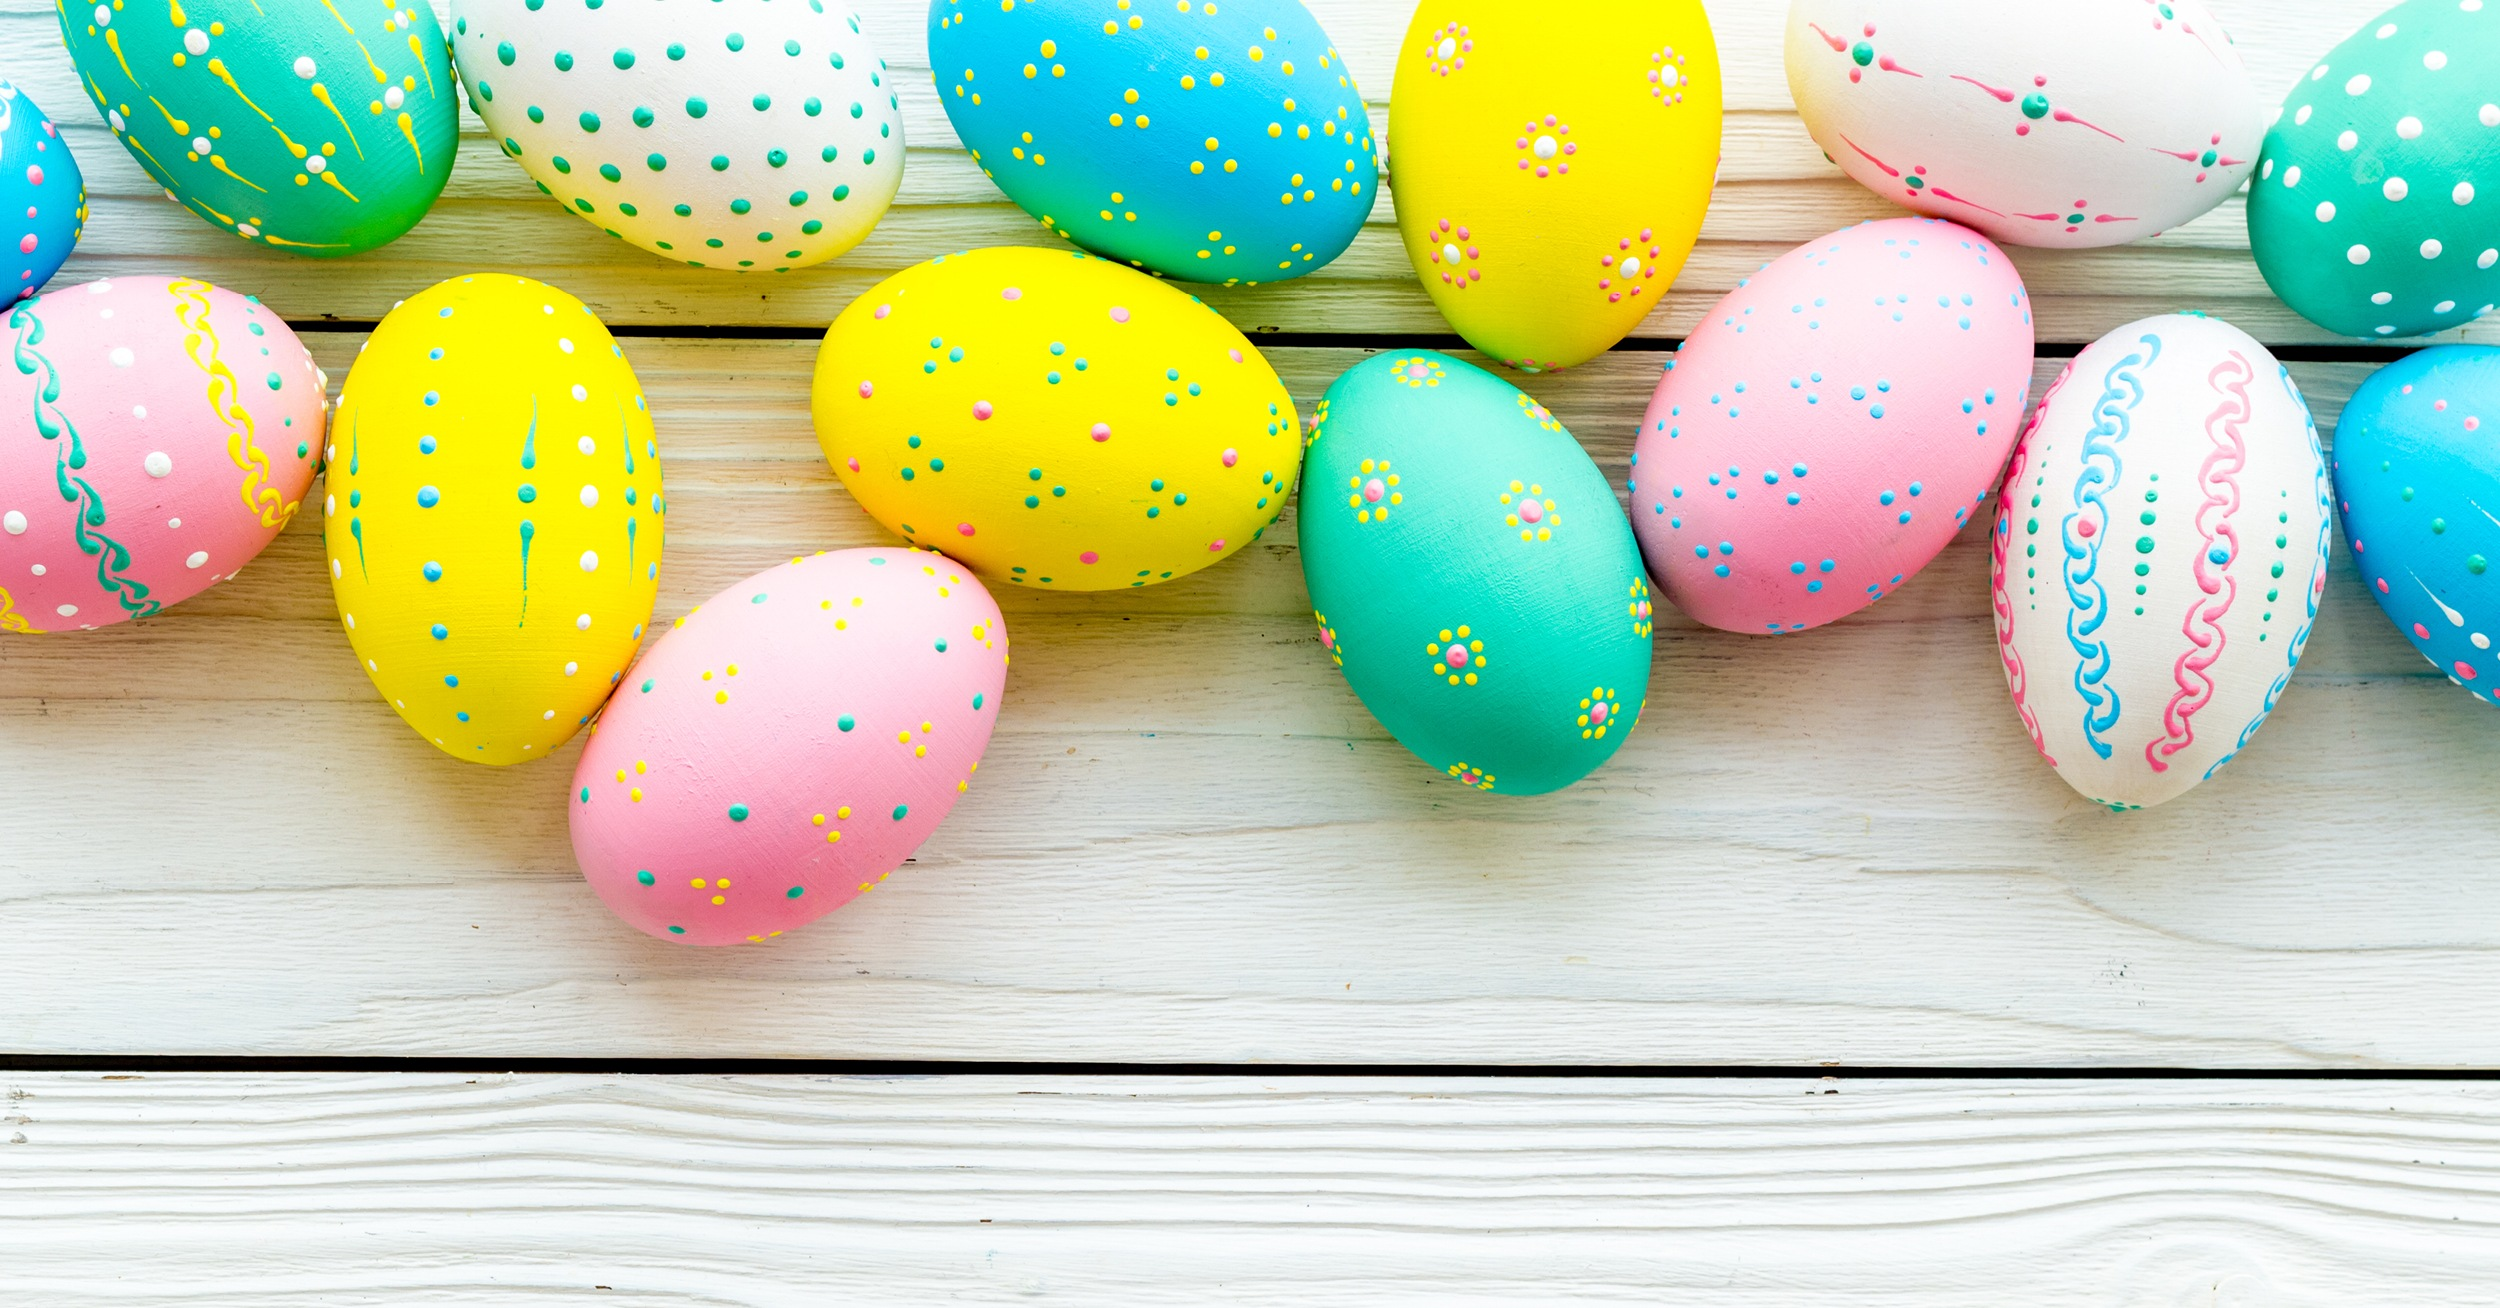 Closed Friday April 19th for Easter Break!